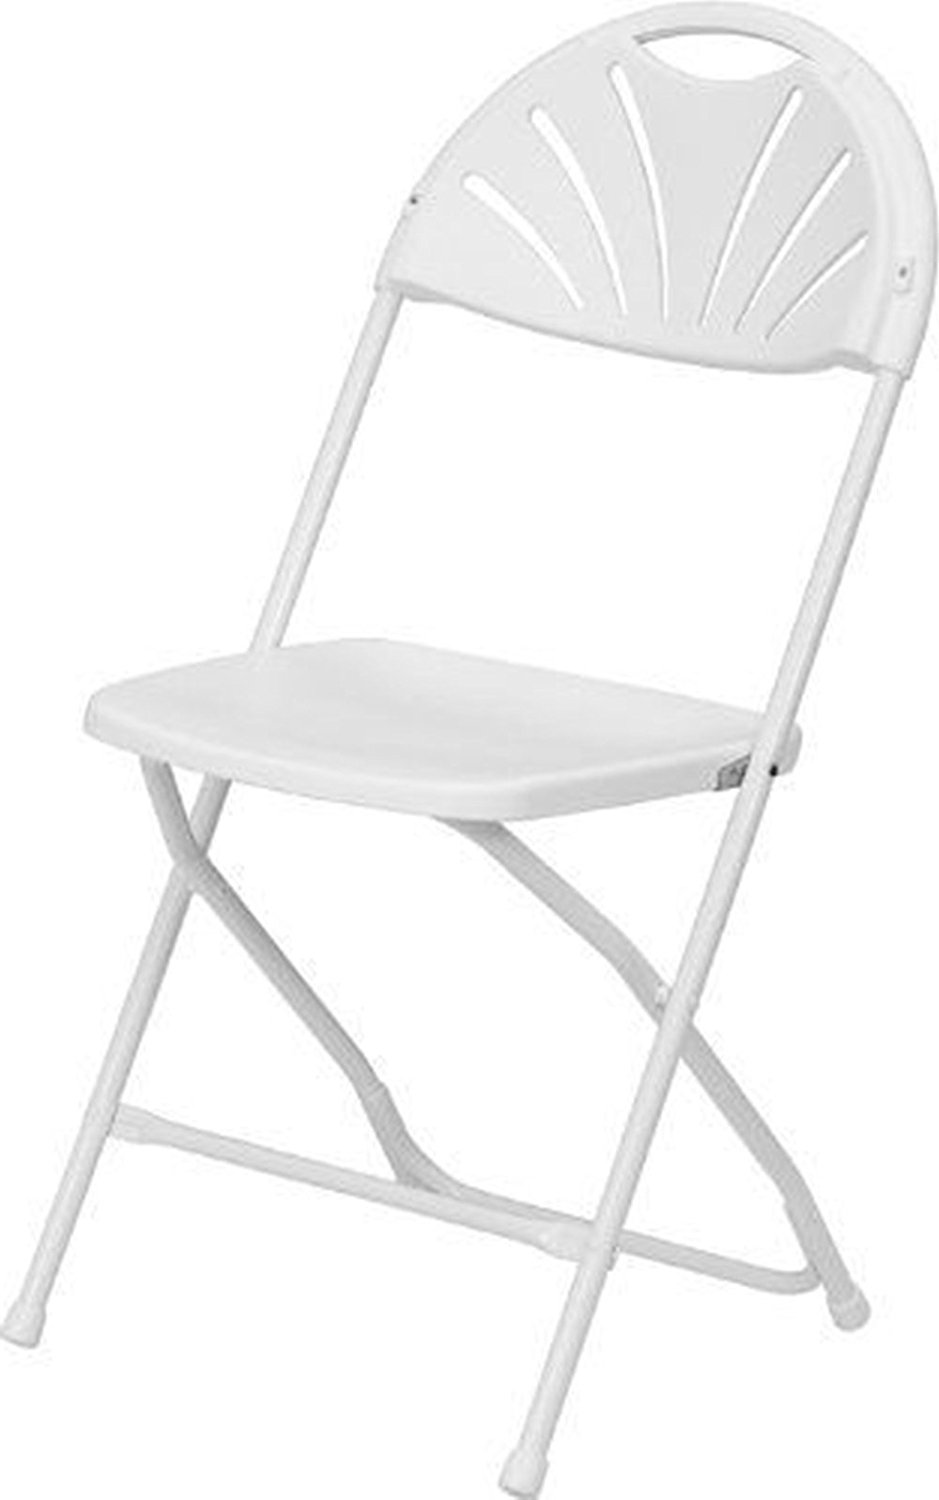 NEW sudden comfort folding chair Series 800 Lb. Capacity White Plastic Fan Back Folding Chair